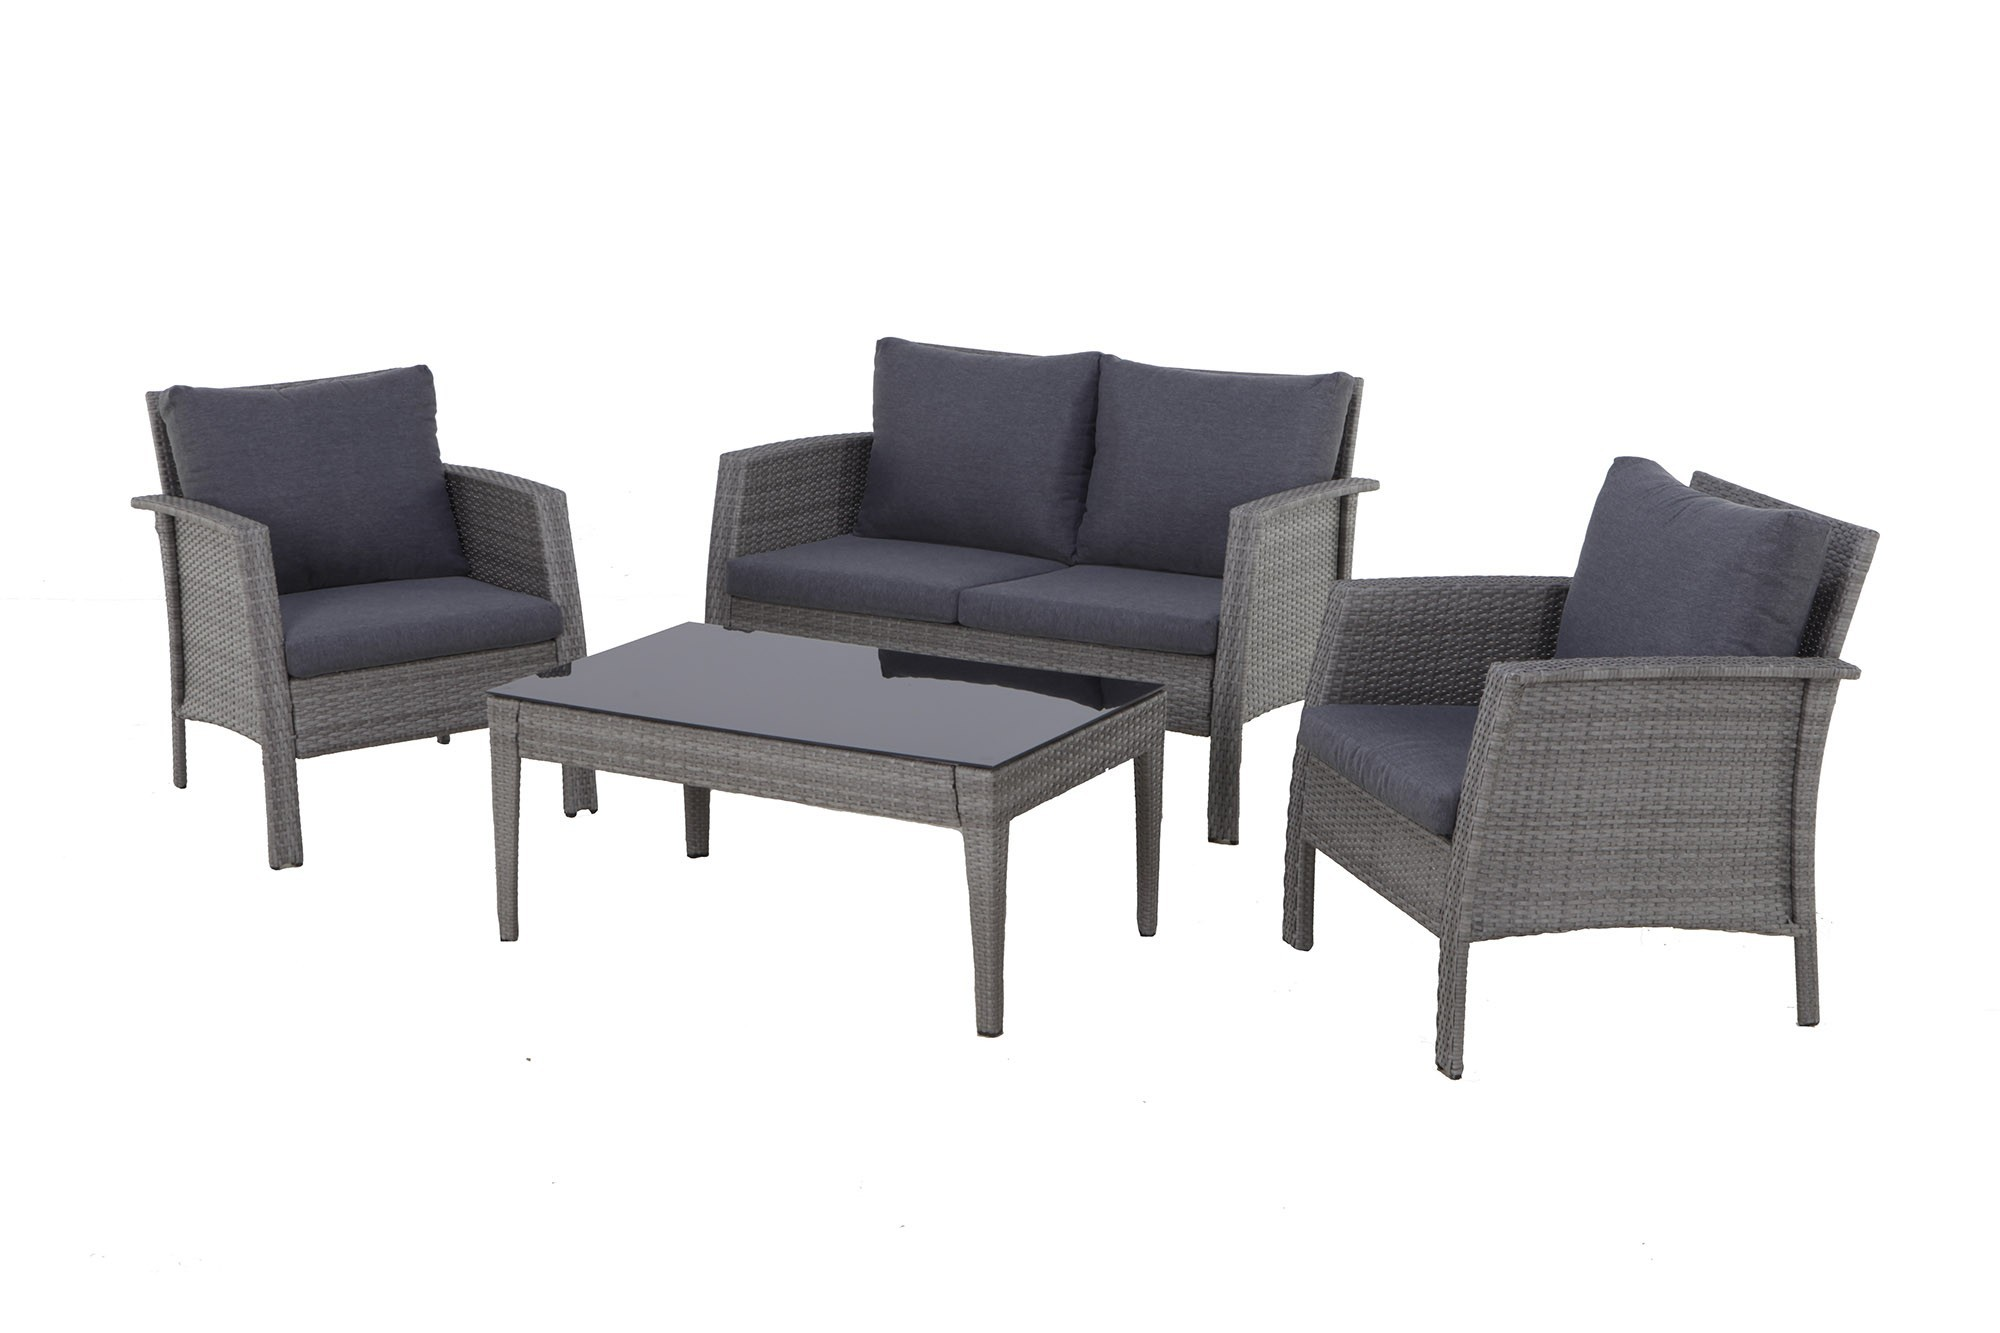 Buy Furniture Online Australia Best Outdoor Elegance And Outdoor Elegance Online Outdoor